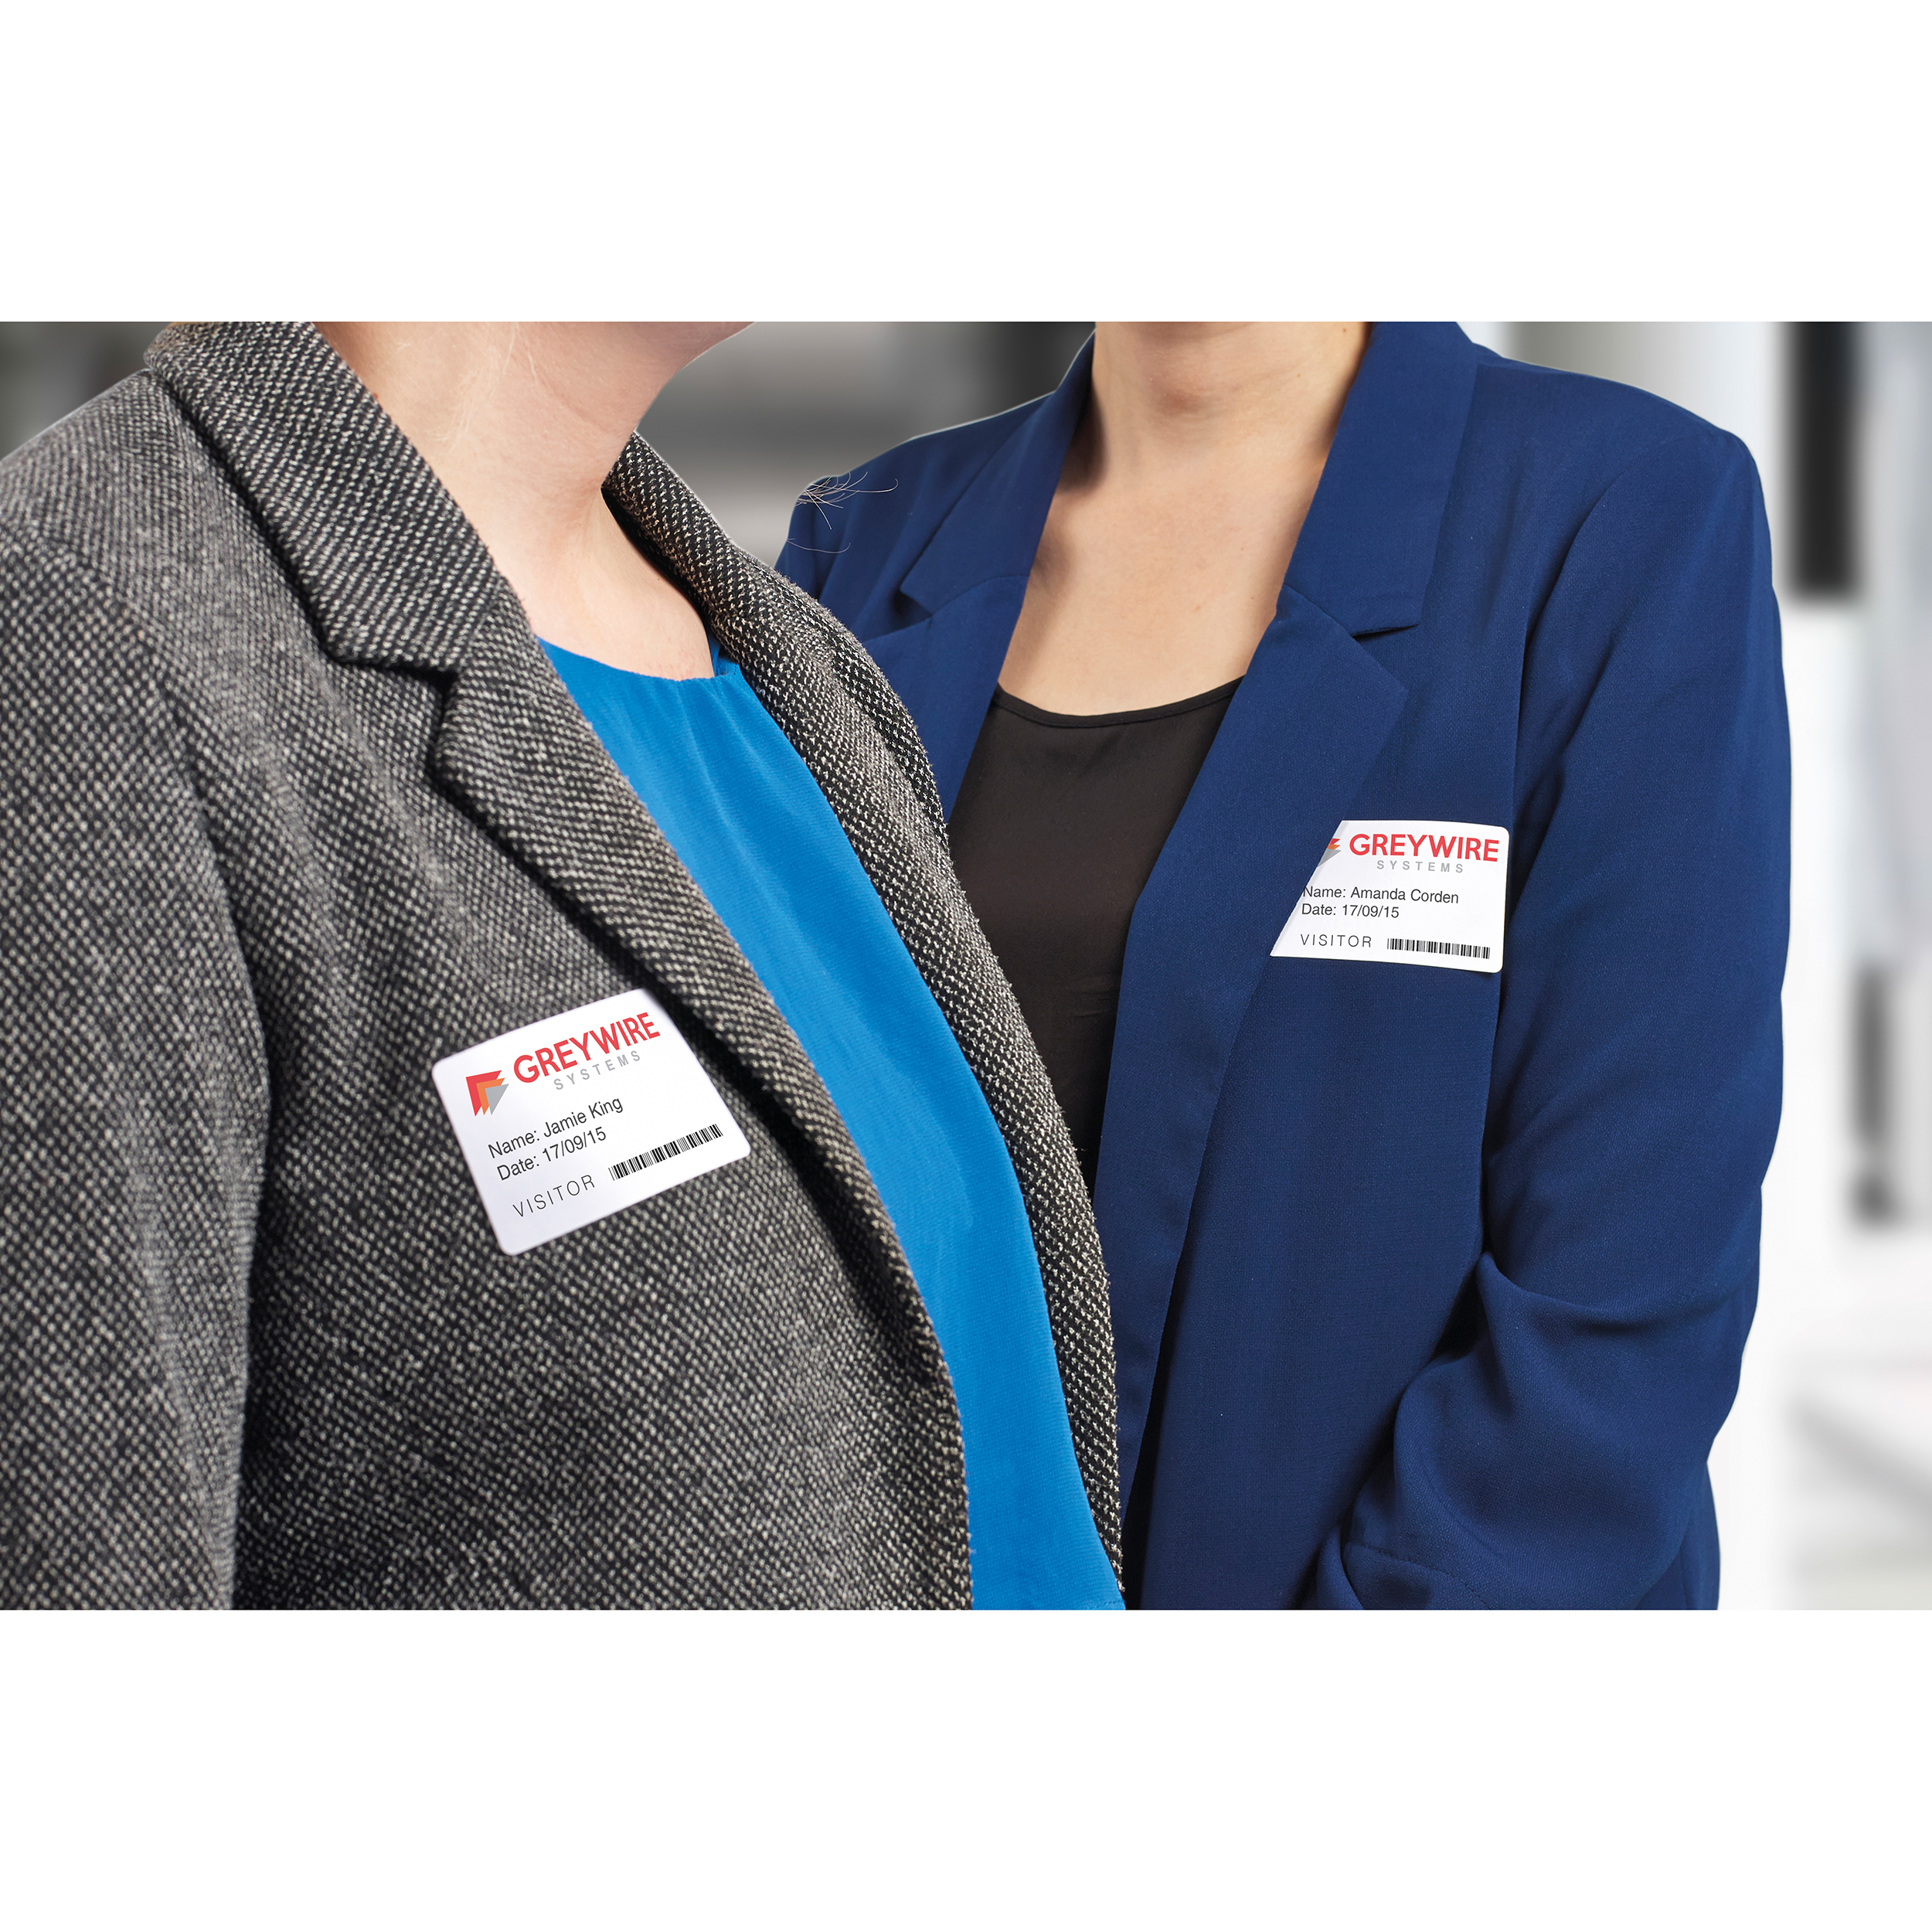 Avery Name Badge Labels Laser Self-adhesive 80x50mm Blue Border Ref L4787-20 [200 Labels]